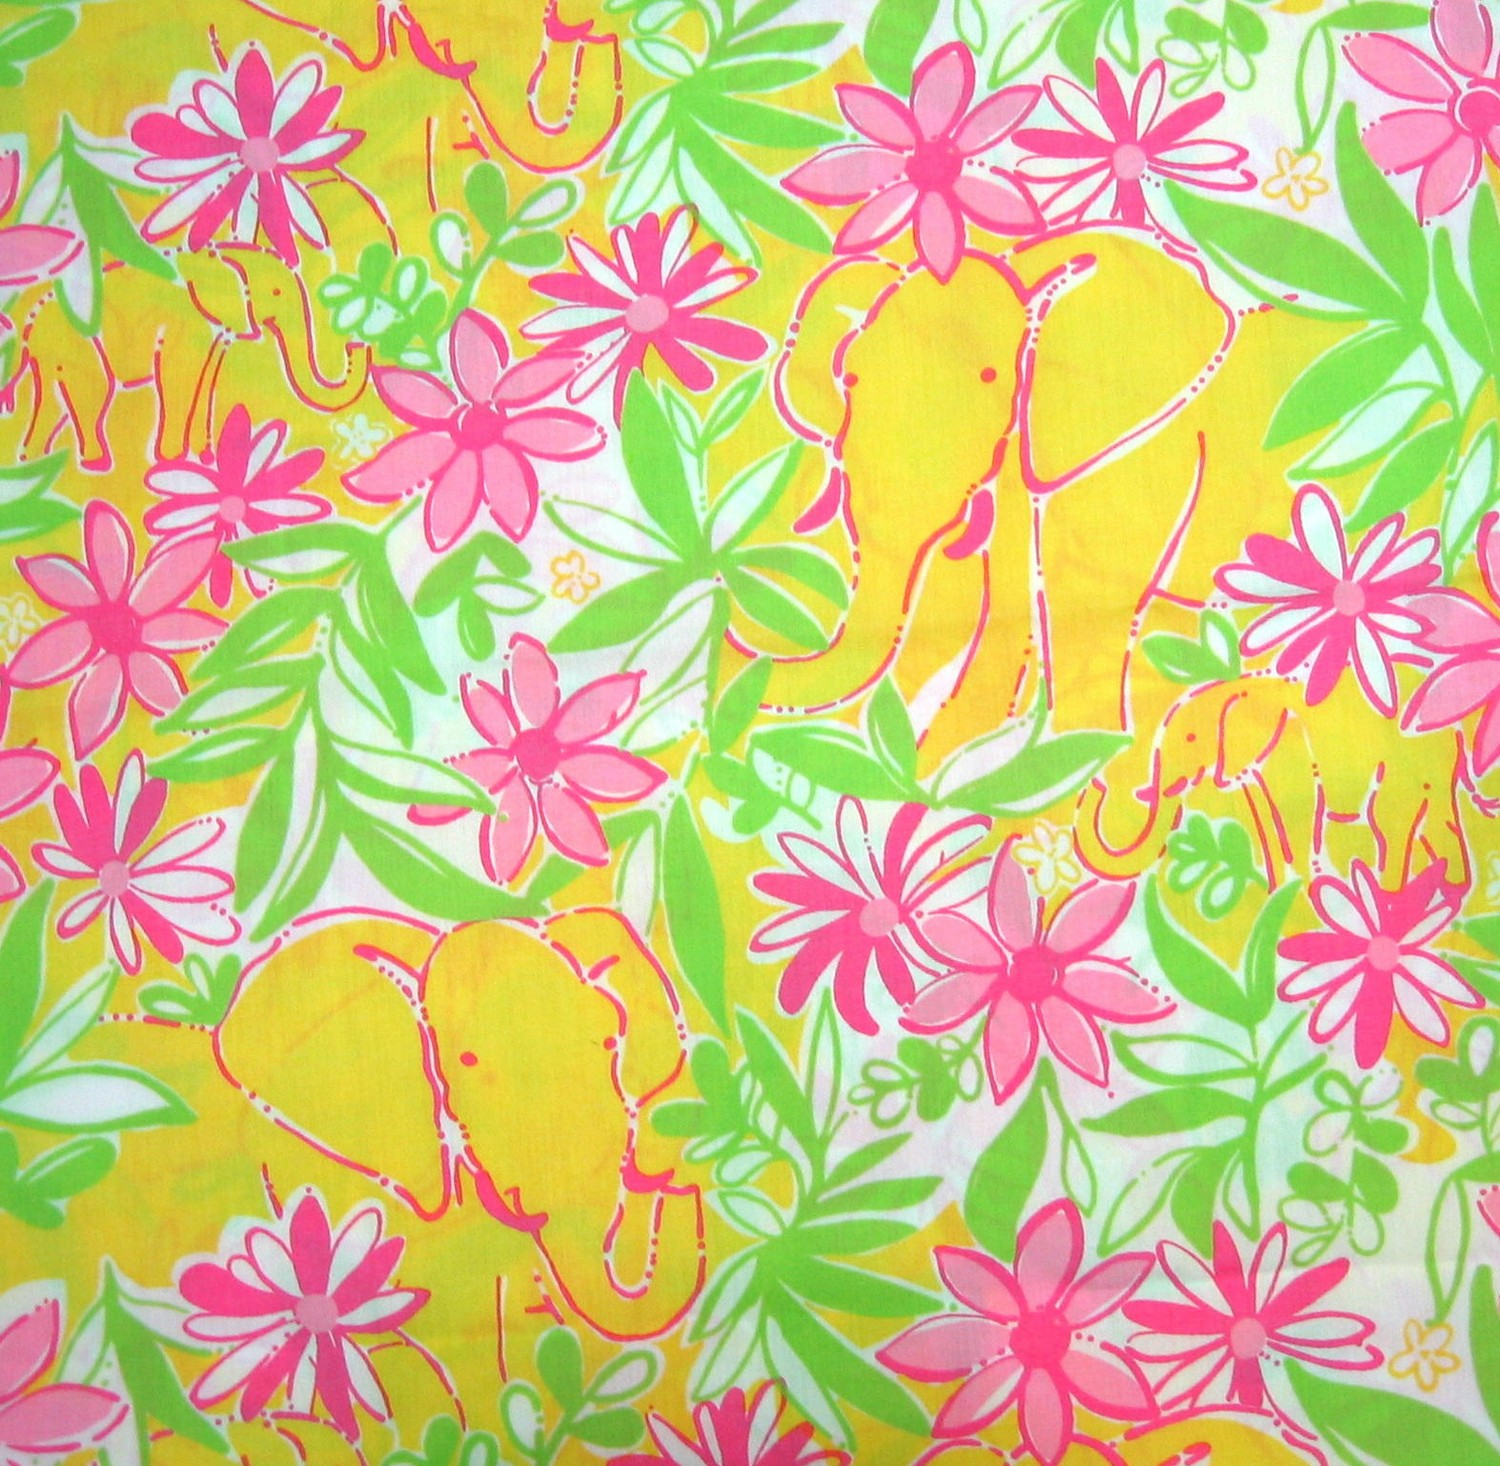 Lilly Pulitzer Backgrounds Elephant   Picture Gallery